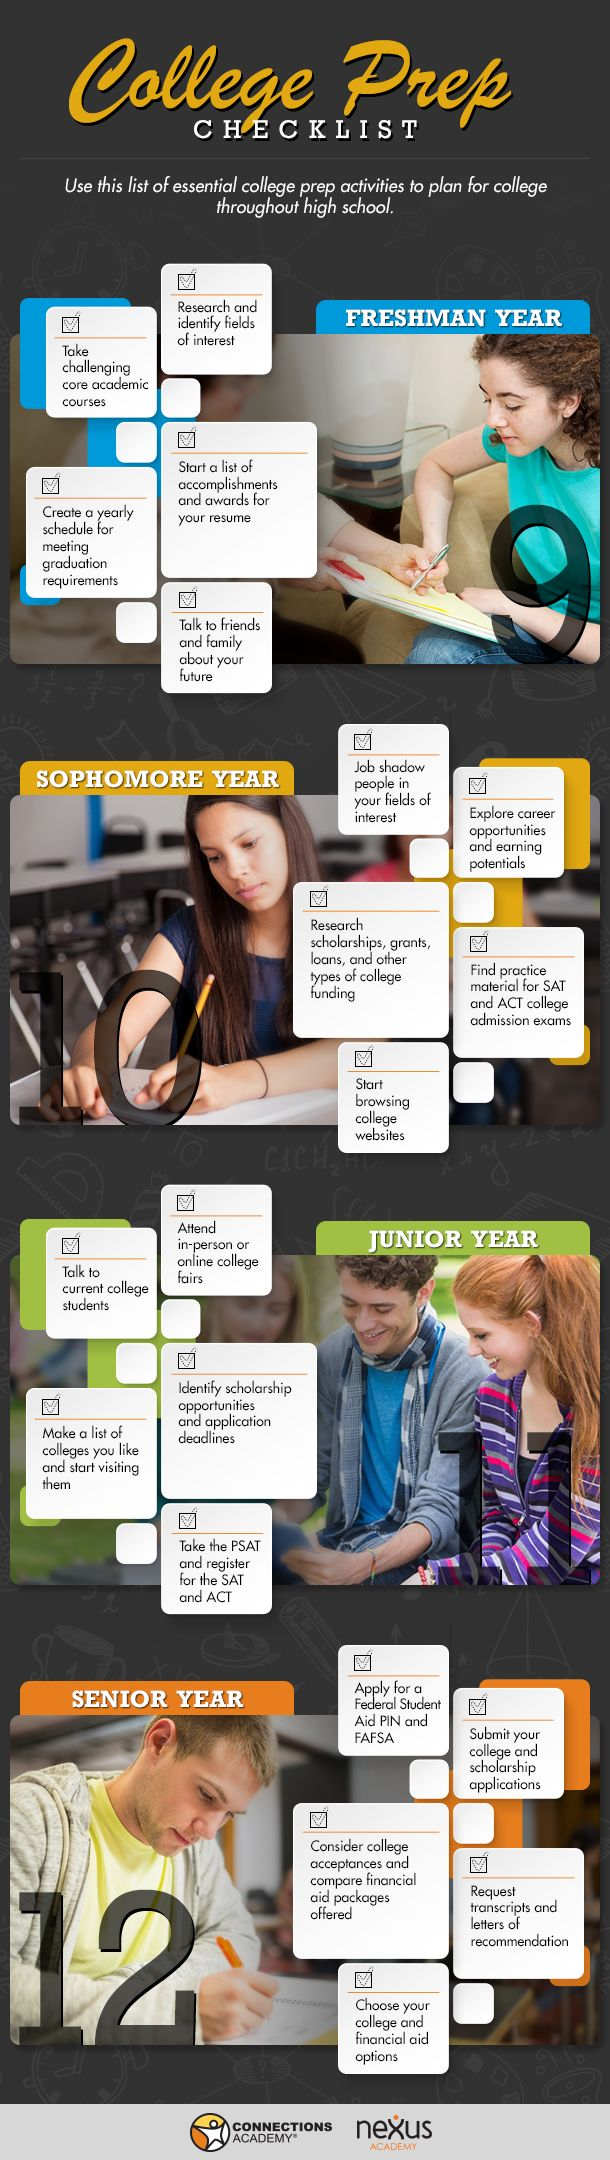 College Prep Checklist http://www.connectionsacademy.com/blog/posts/2014-09-29/The-Student-s-Guide-to-Getting-Ready-for-College.aspx